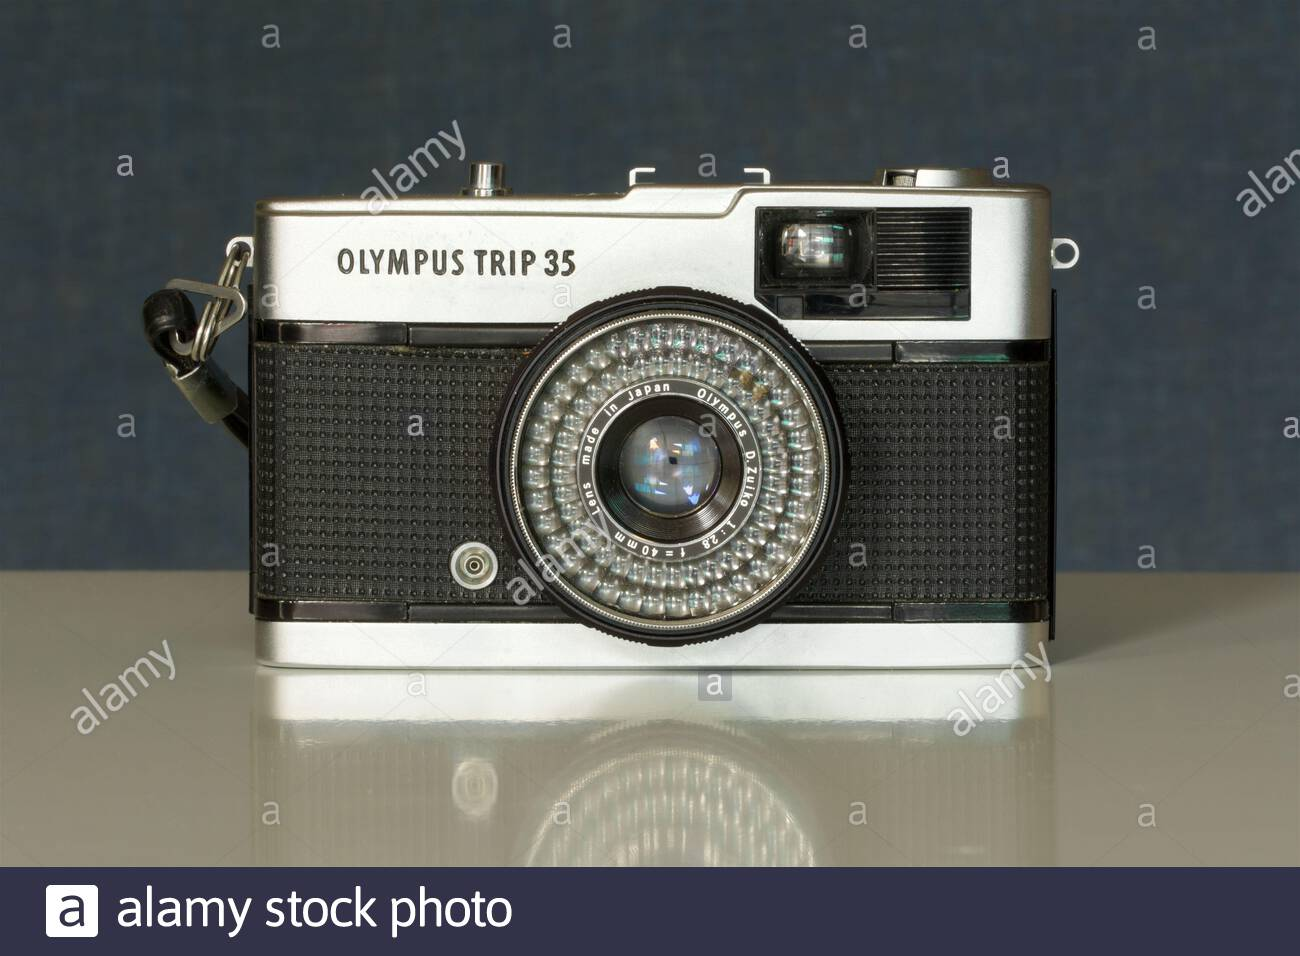 A 1972 model Olympus Trip 35, a fully automatic 35mm film camera. The light meter and automatic exposure system are solar-powered. Stock Photo